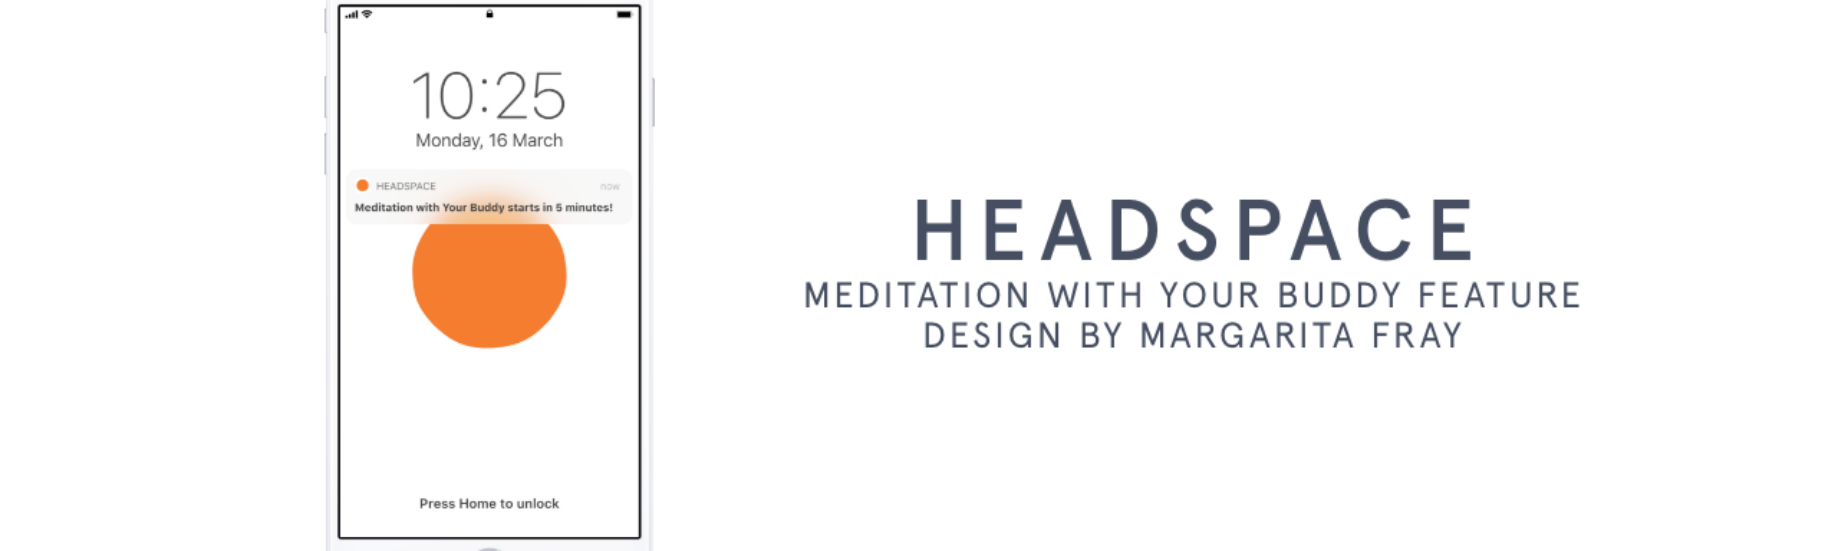 designing a feature for headspace meditation with your buddy by margarita fray medium headspace meditation with your buddy